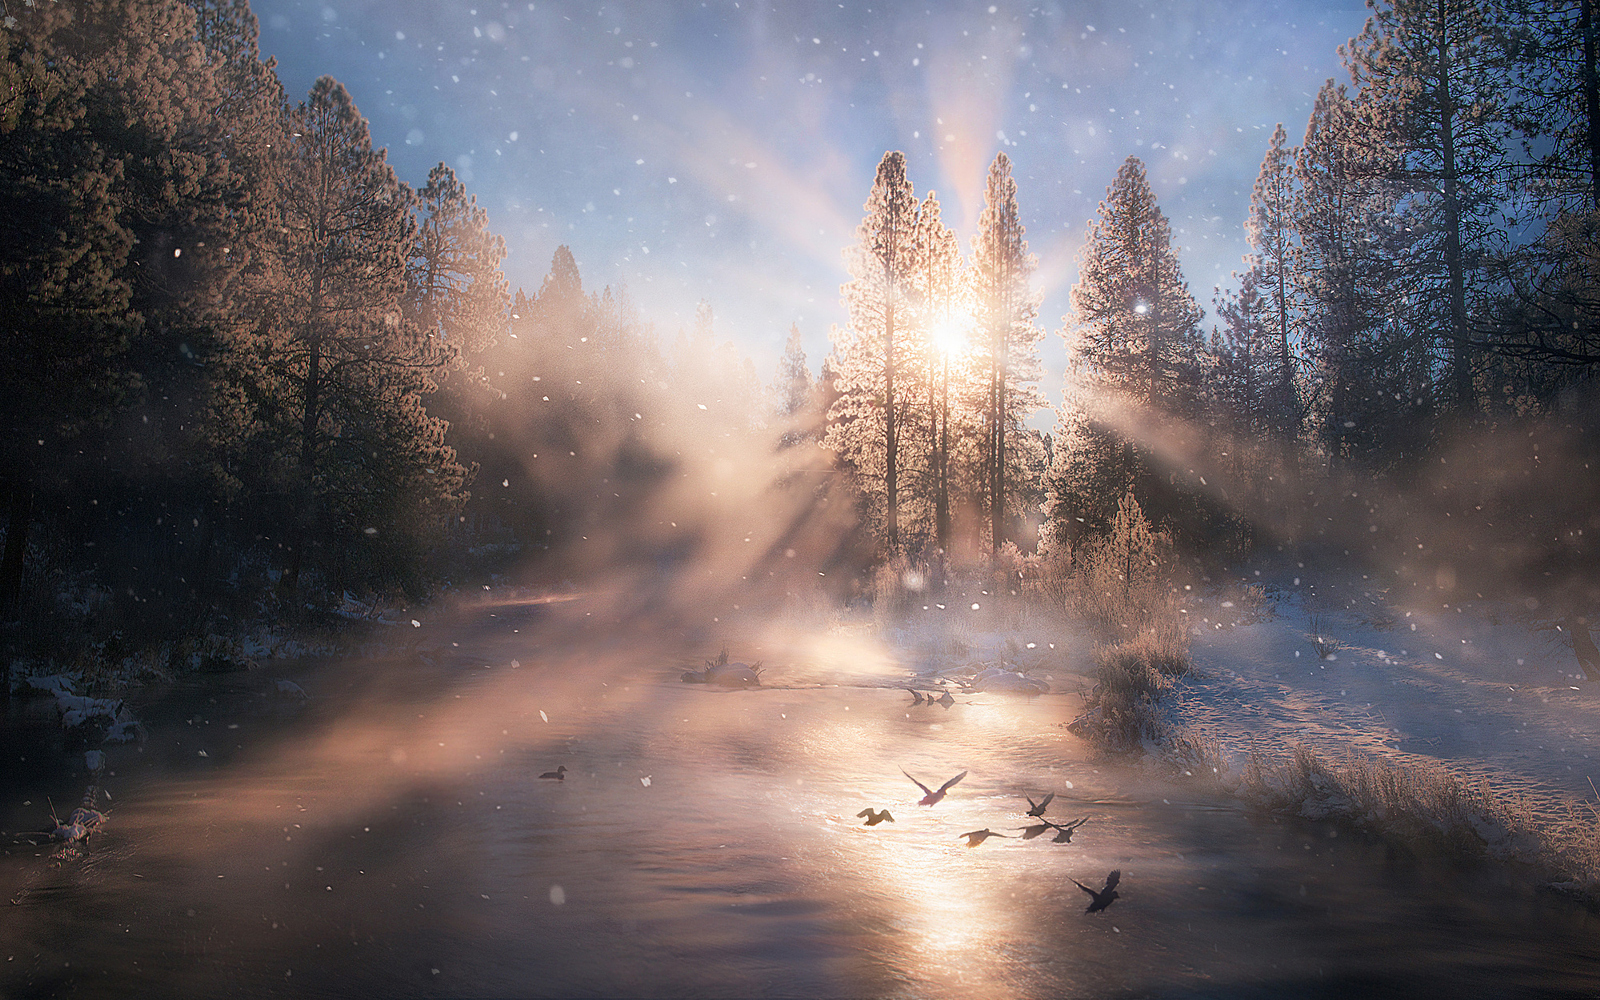 Top 20 Landscape Photos on 500px So Far This Year